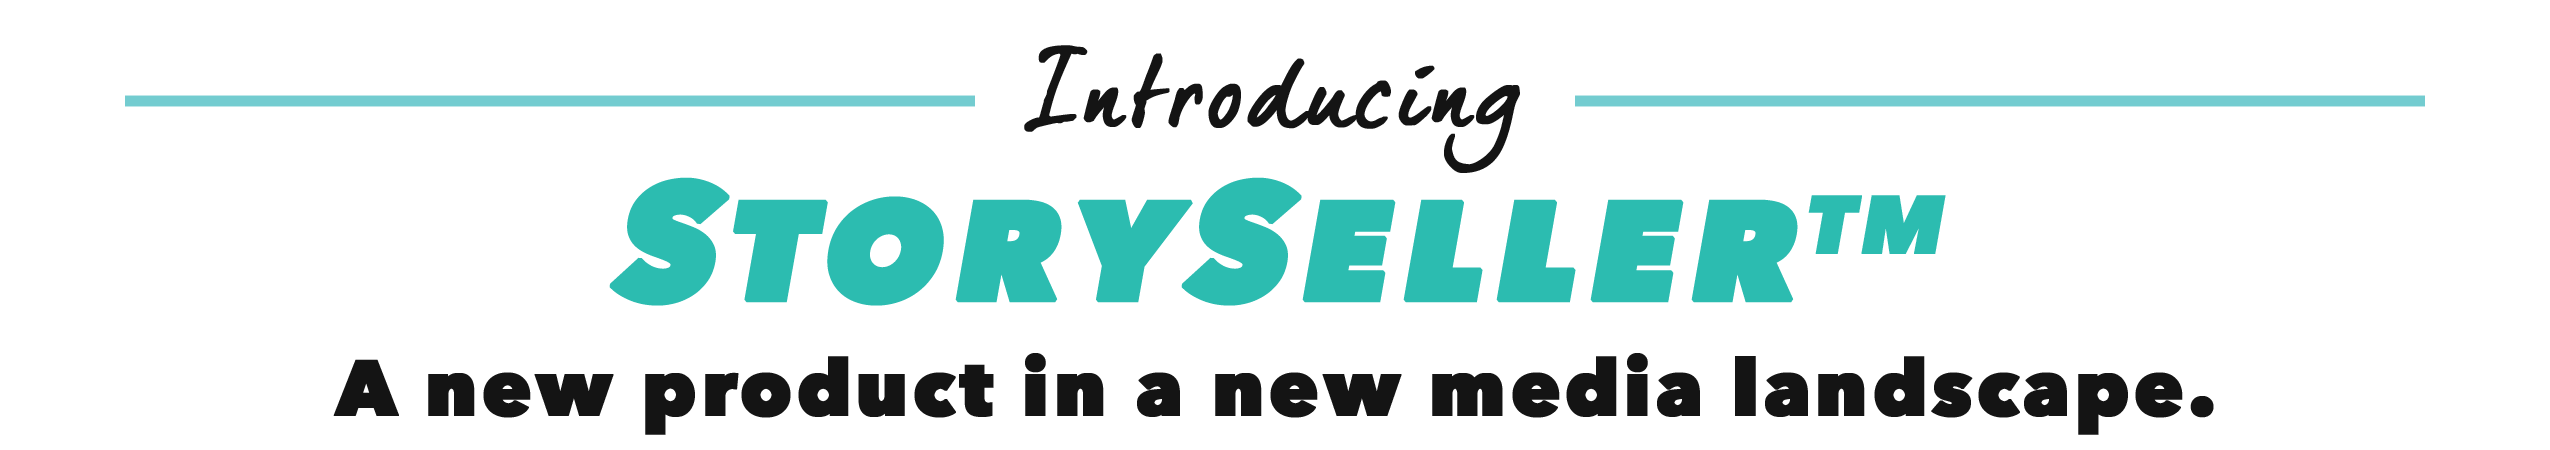 Introducing StorySeller from Content Studio.